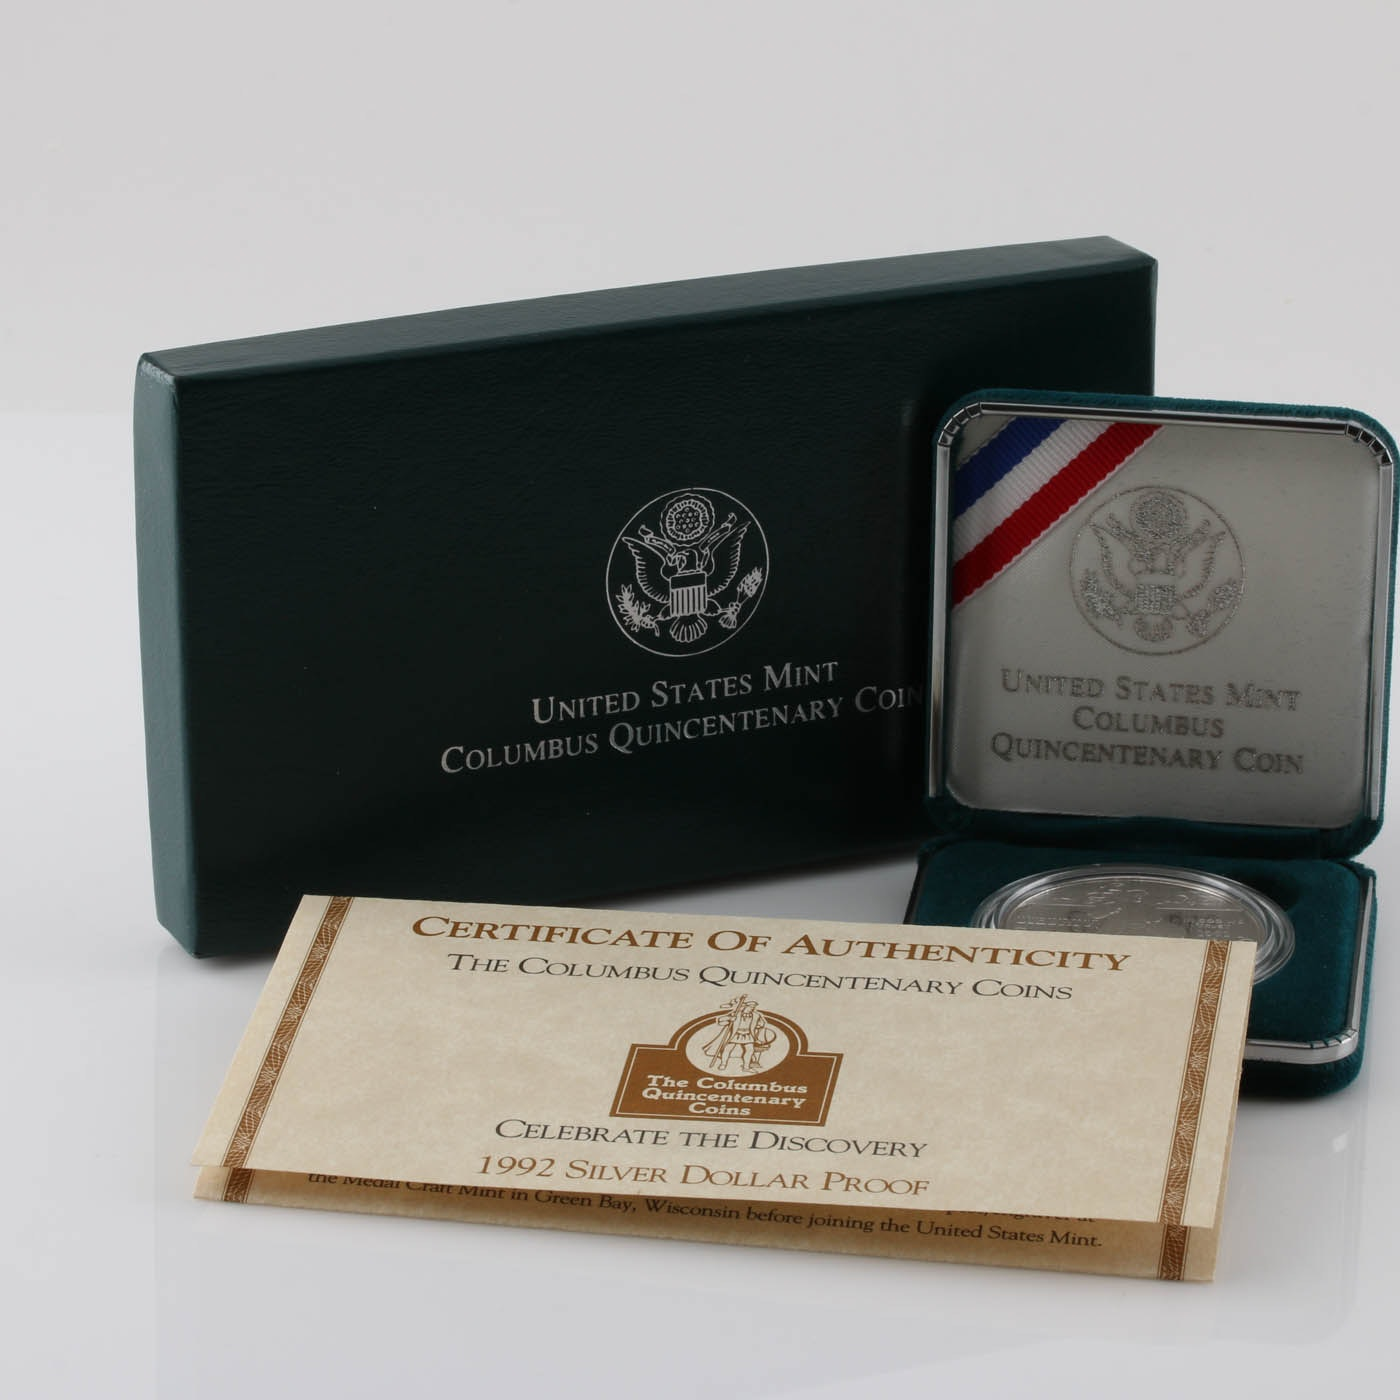 1992-P Columbus Quincentenary Commemorative One Dollar Silver Proof Coin